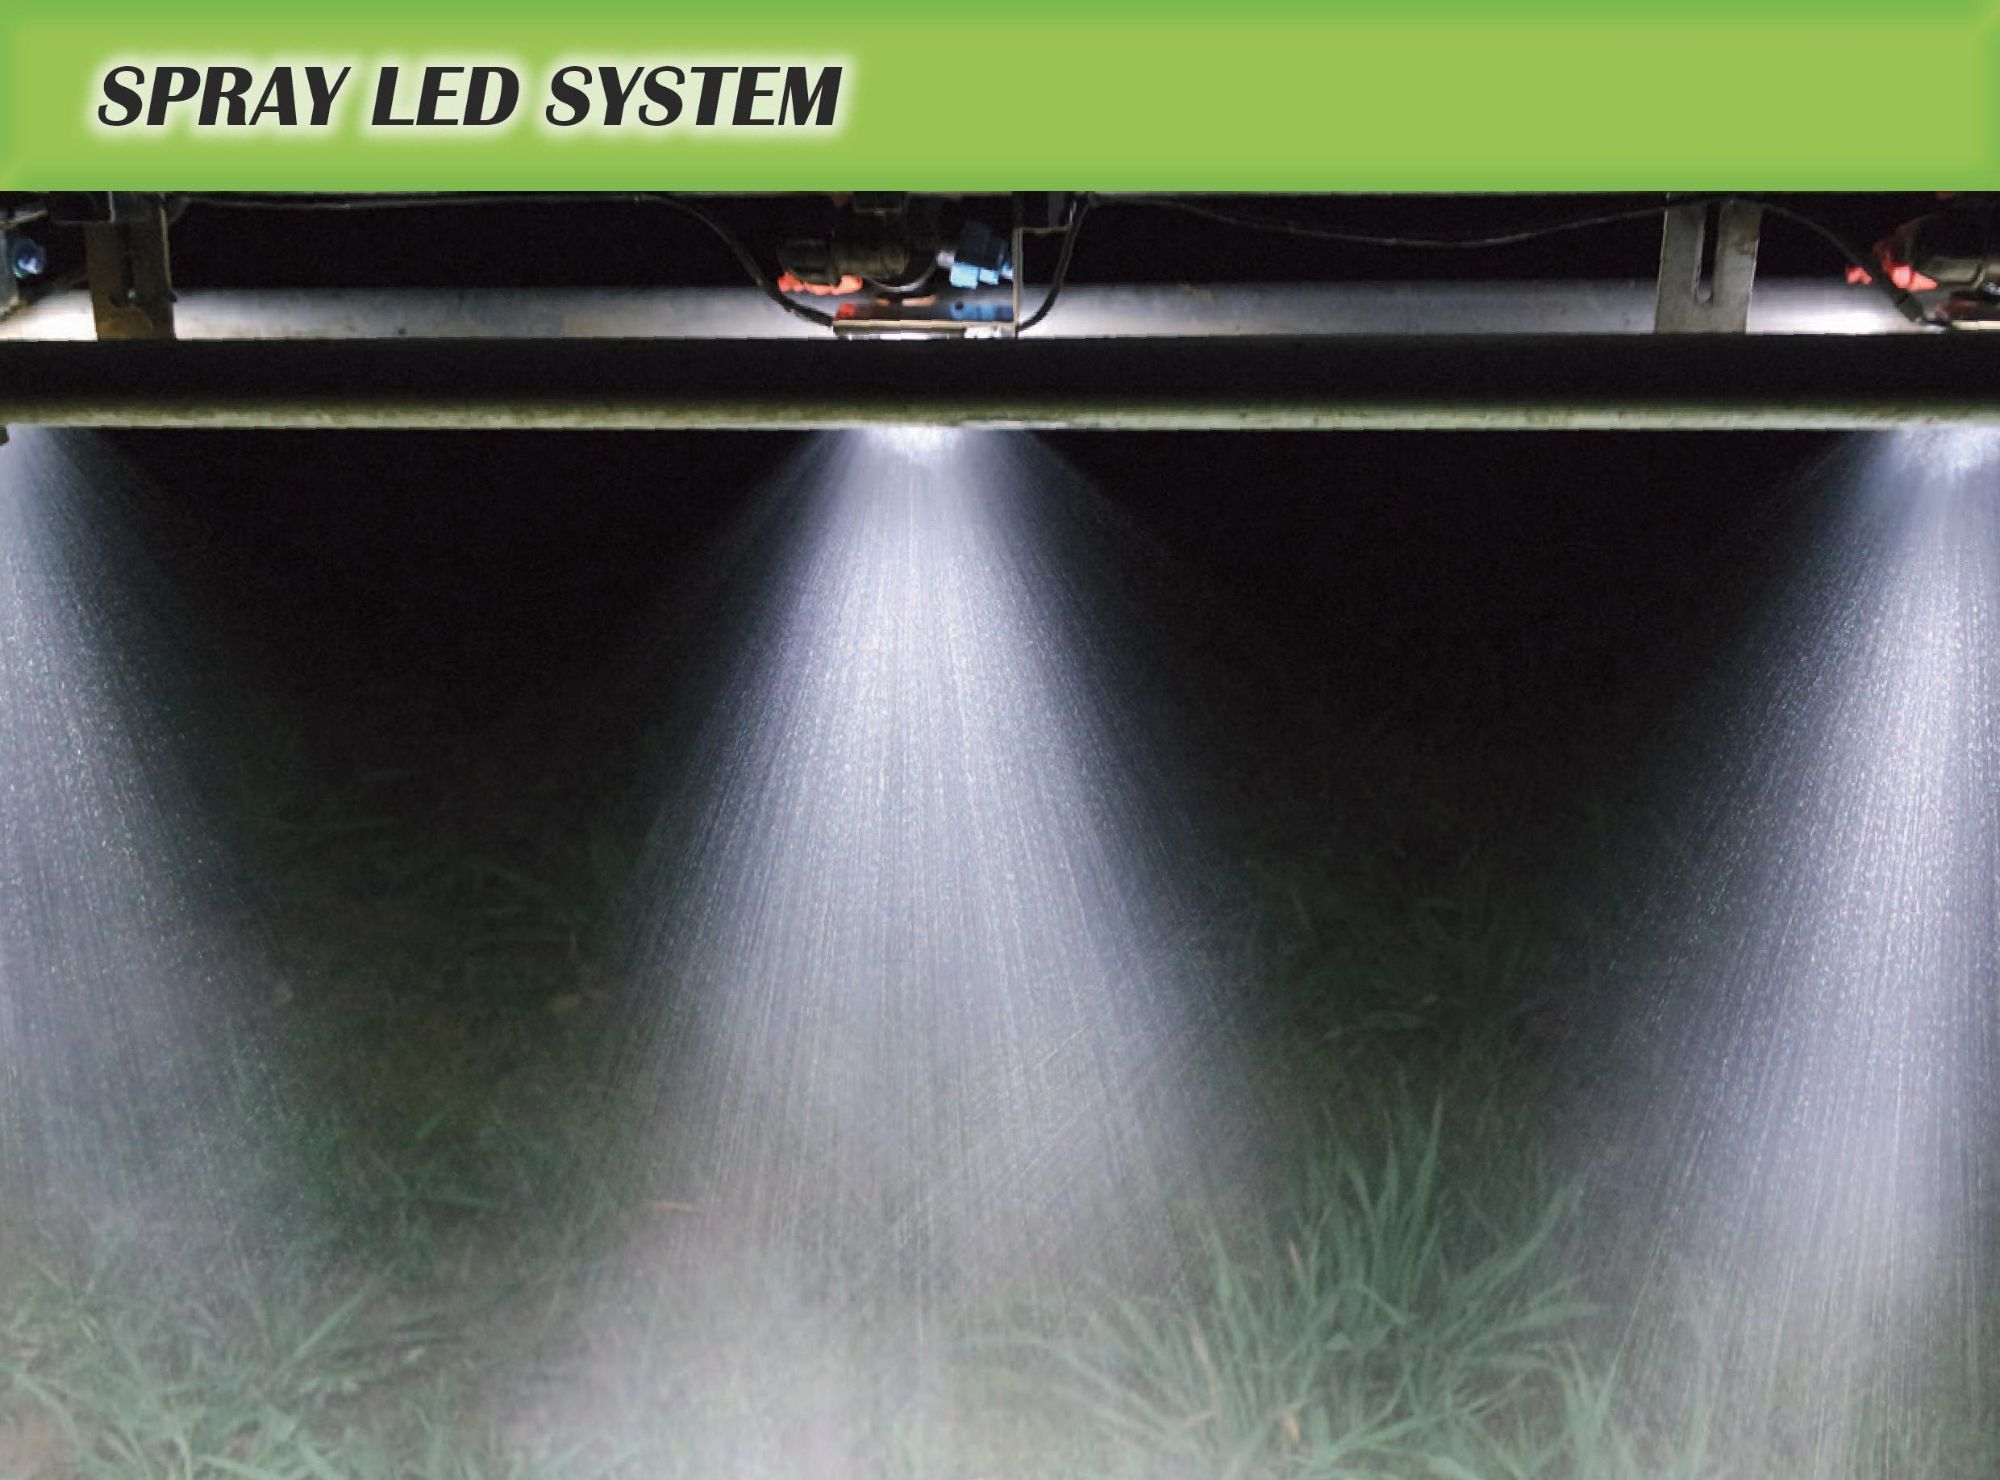 Spray LED System